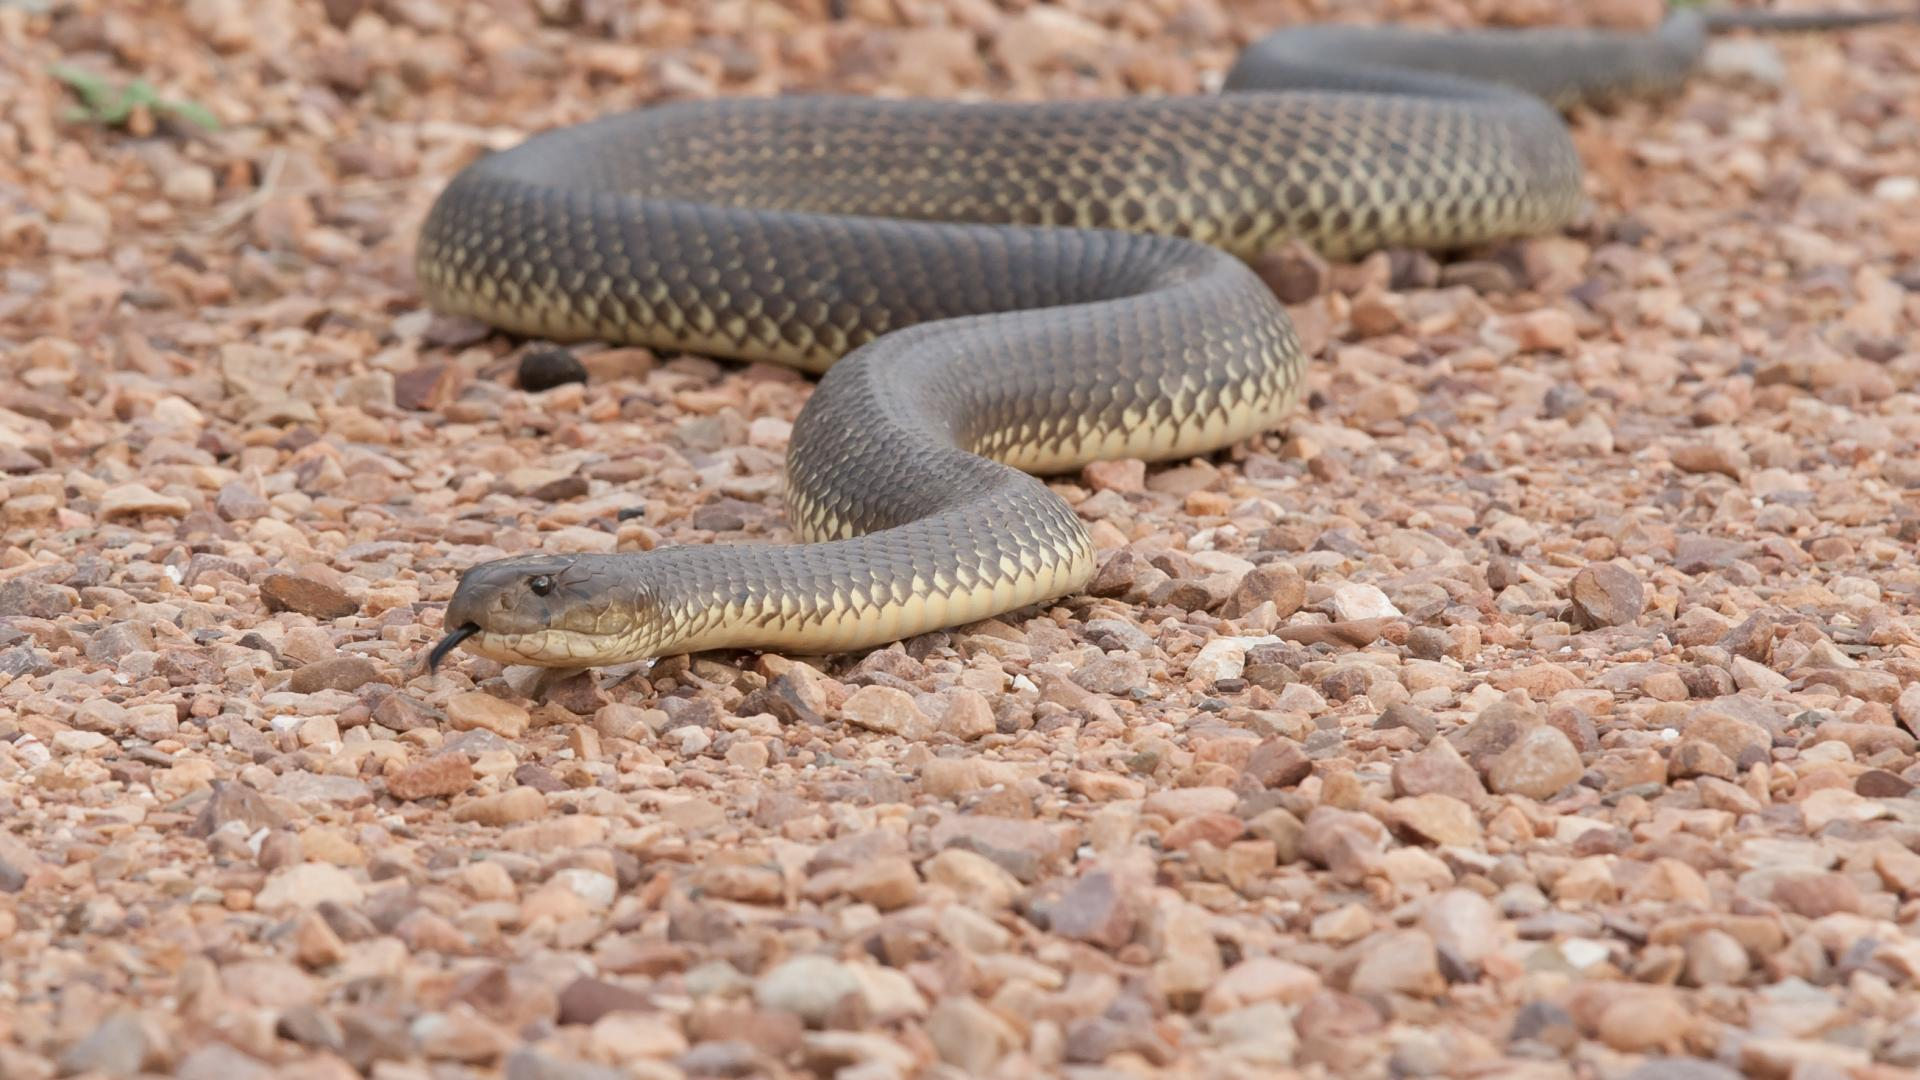 Invasive snake species on the ground